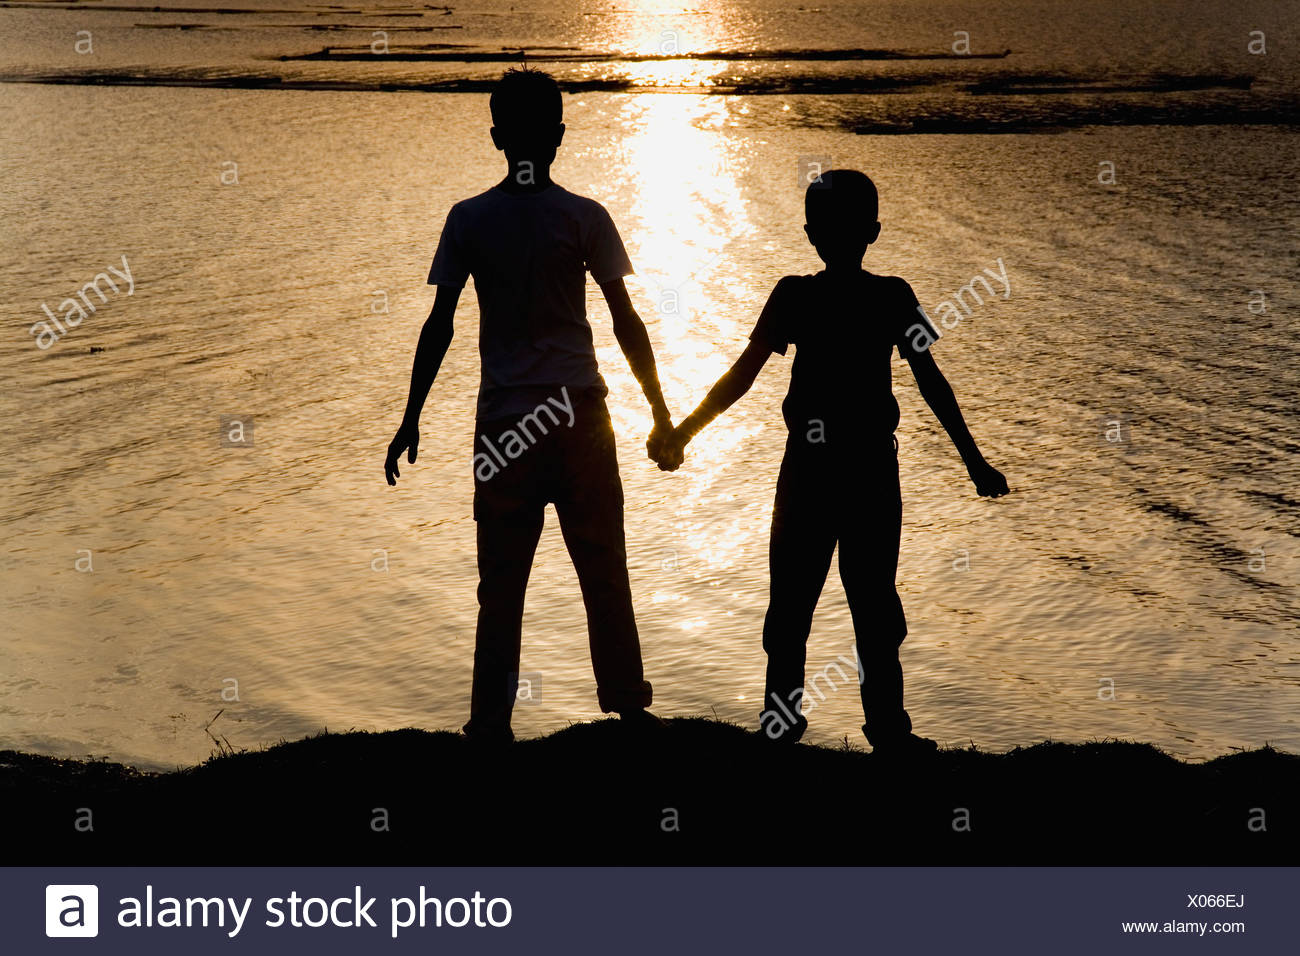 Sunset Bestfriends High Resolution Stock Photography And Images Alamy